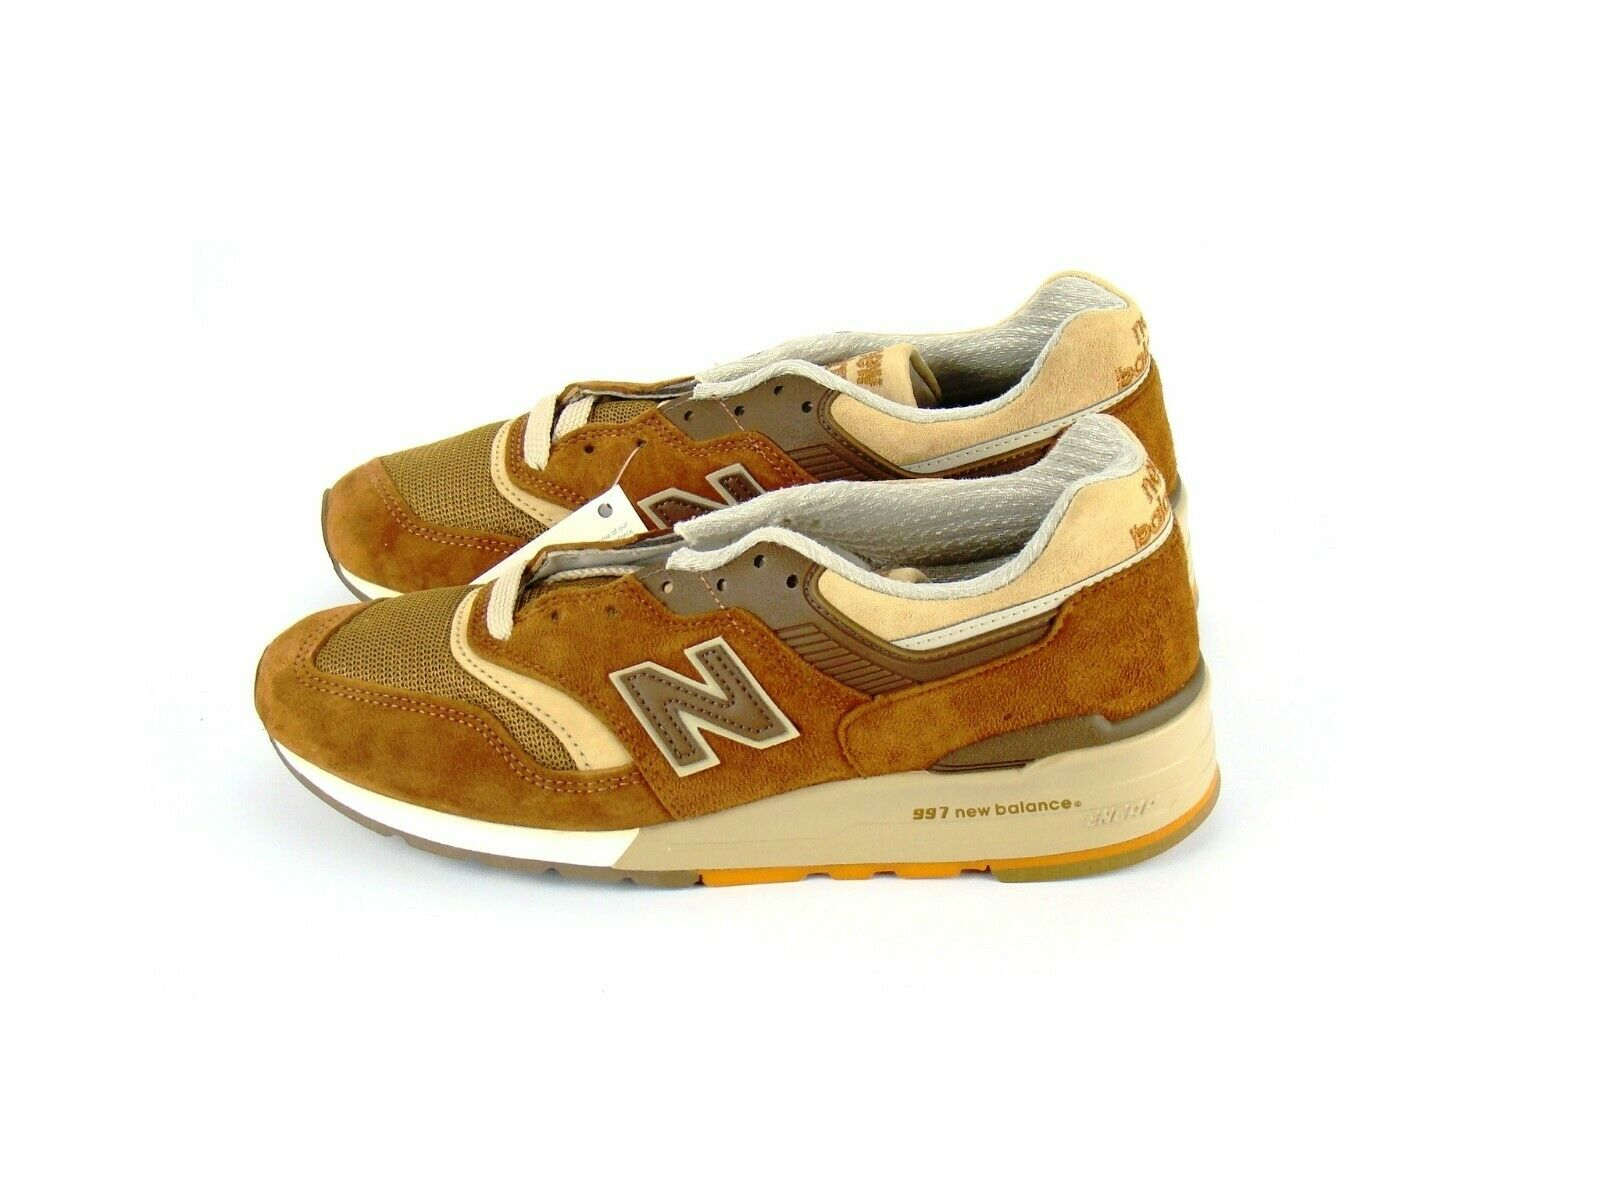 DS J Crew x New Balance 997 M997JC1 Butterscotch Sz 7.5 cortado moonshot 998 999